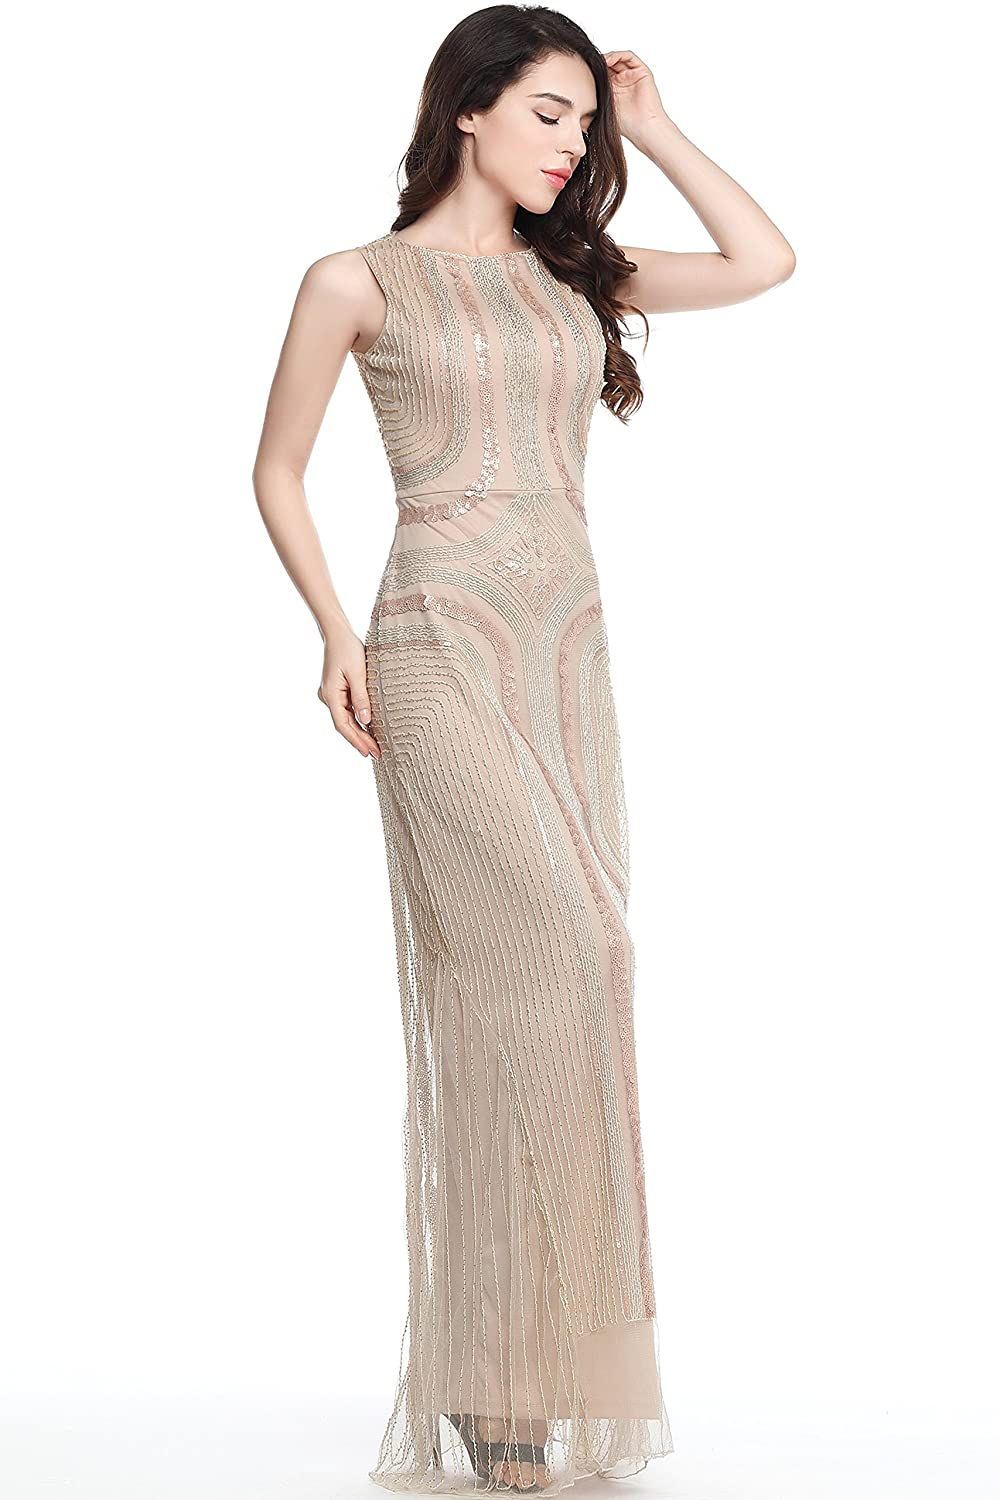 Vintage Evening Dresses and Formal Evening Gowns BABEYOND 1920s Flapper Fancy Dress Roaring 20s Gatsby Dress Costume Vintage Sequin Beaded Long Evening Dress $39.99 AT vintagedancer.com